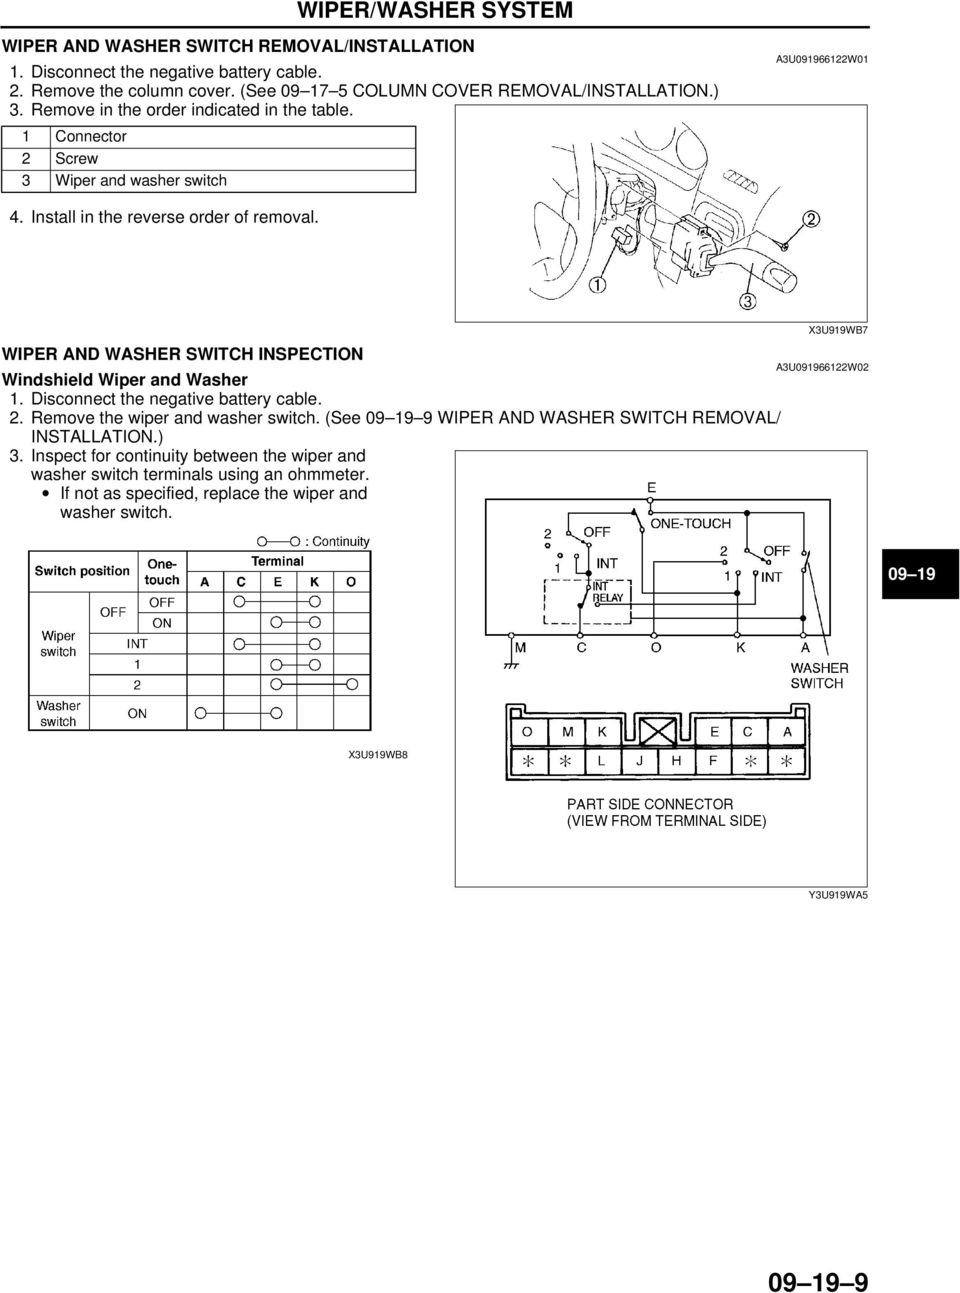 09 19 Wiper Washer System Pdf Vw Motor Wiring Diagram Repalcement Parts And Switch Inspection Windshield 2 Remove The